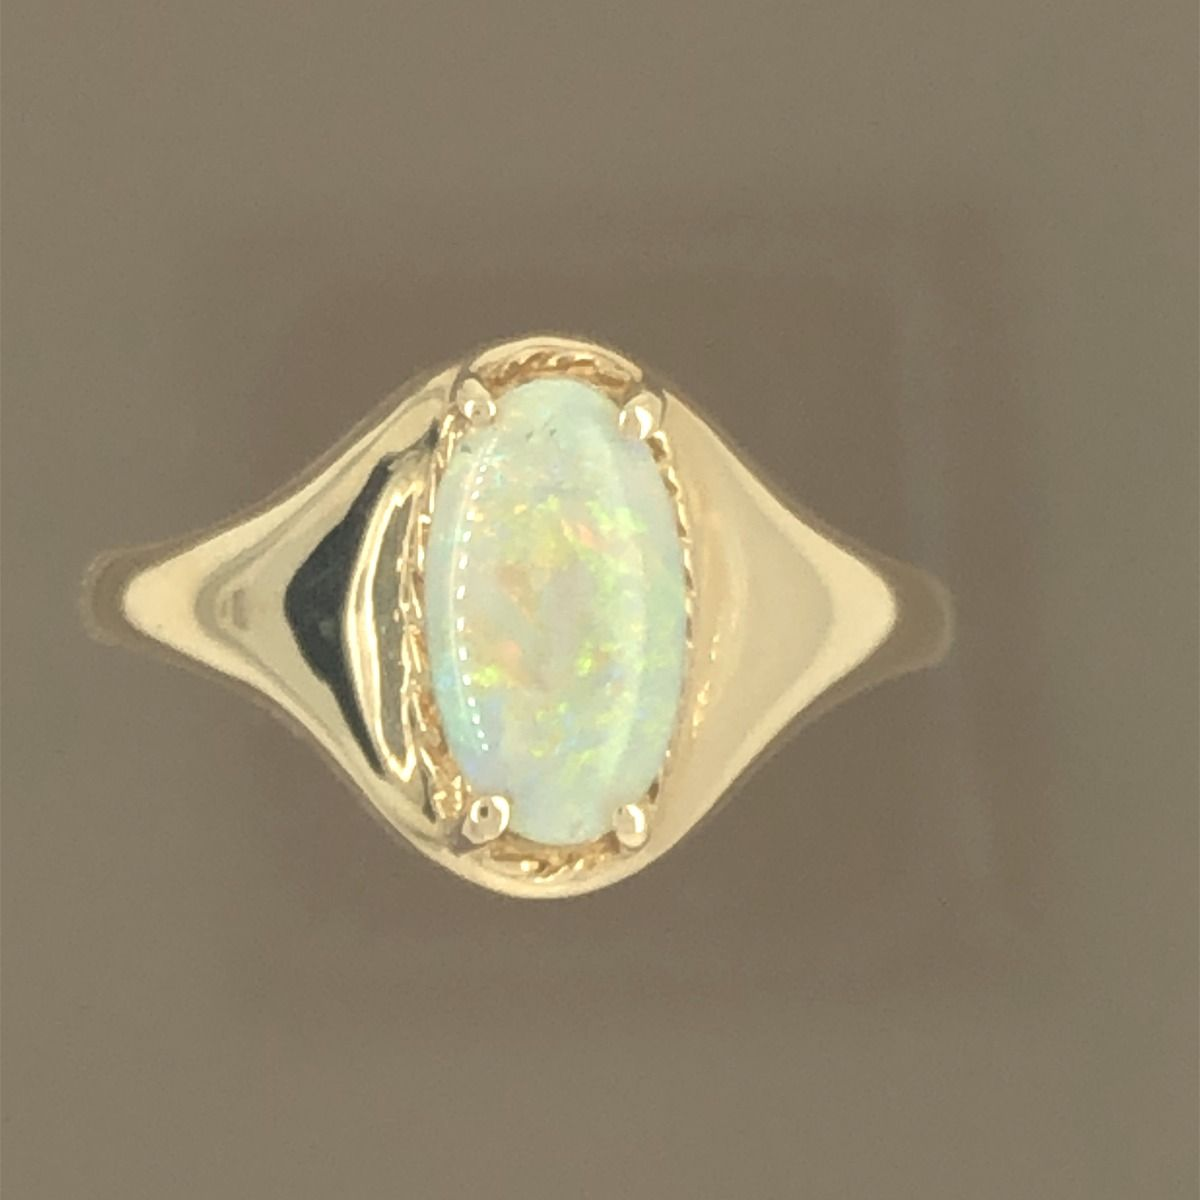 Solid Opal Ring set in 14ct gold (10mmx6mm)